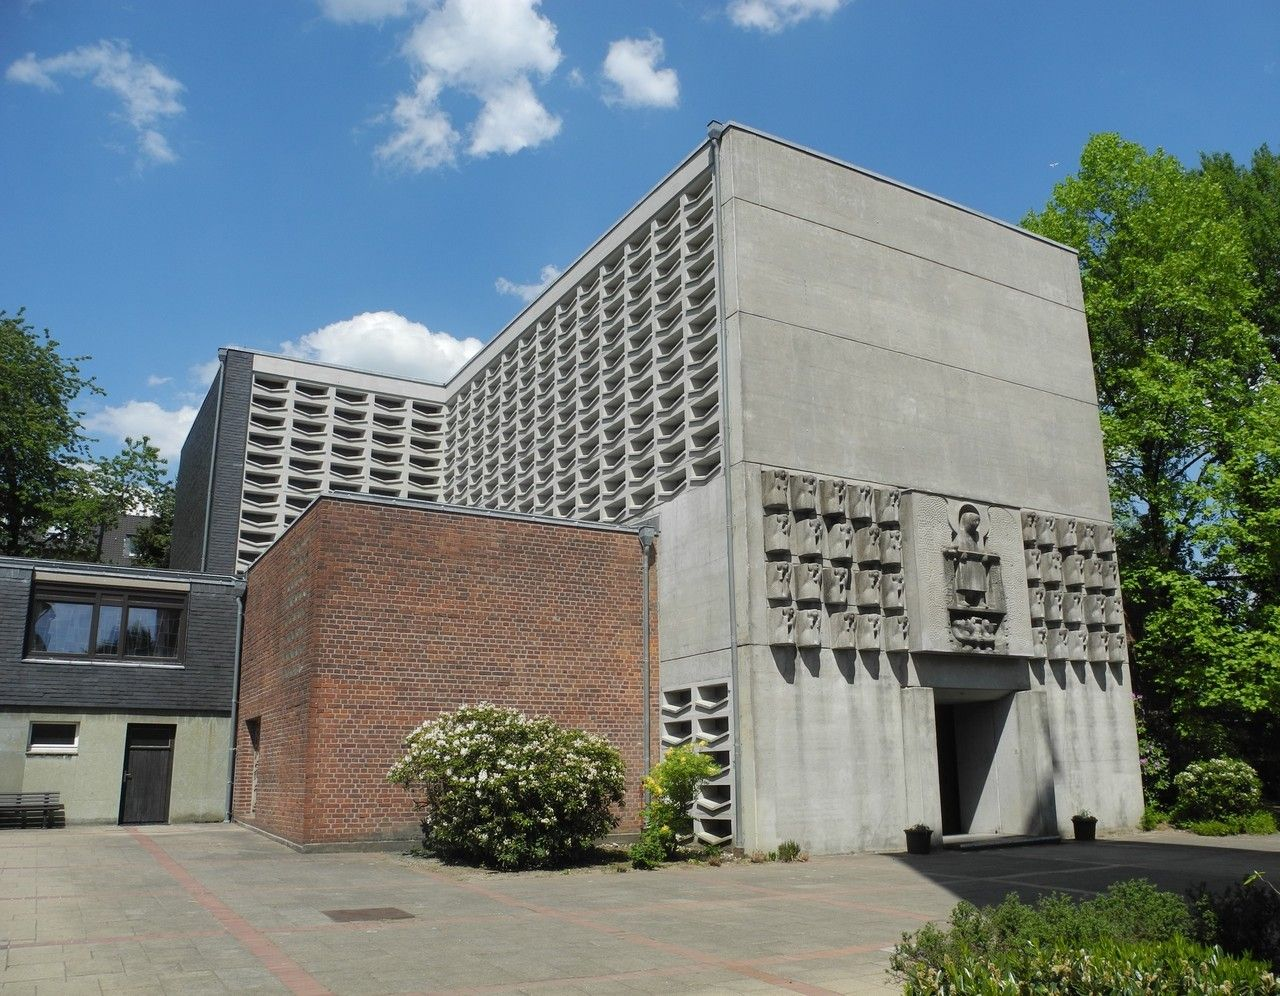 Church St Michael 1958 60 In Wuppertal Germany By Klaus Gobel Concrete Sculpture By Rudolf Pee In 2020 Wuppertal Concrete Sculpture St Michael